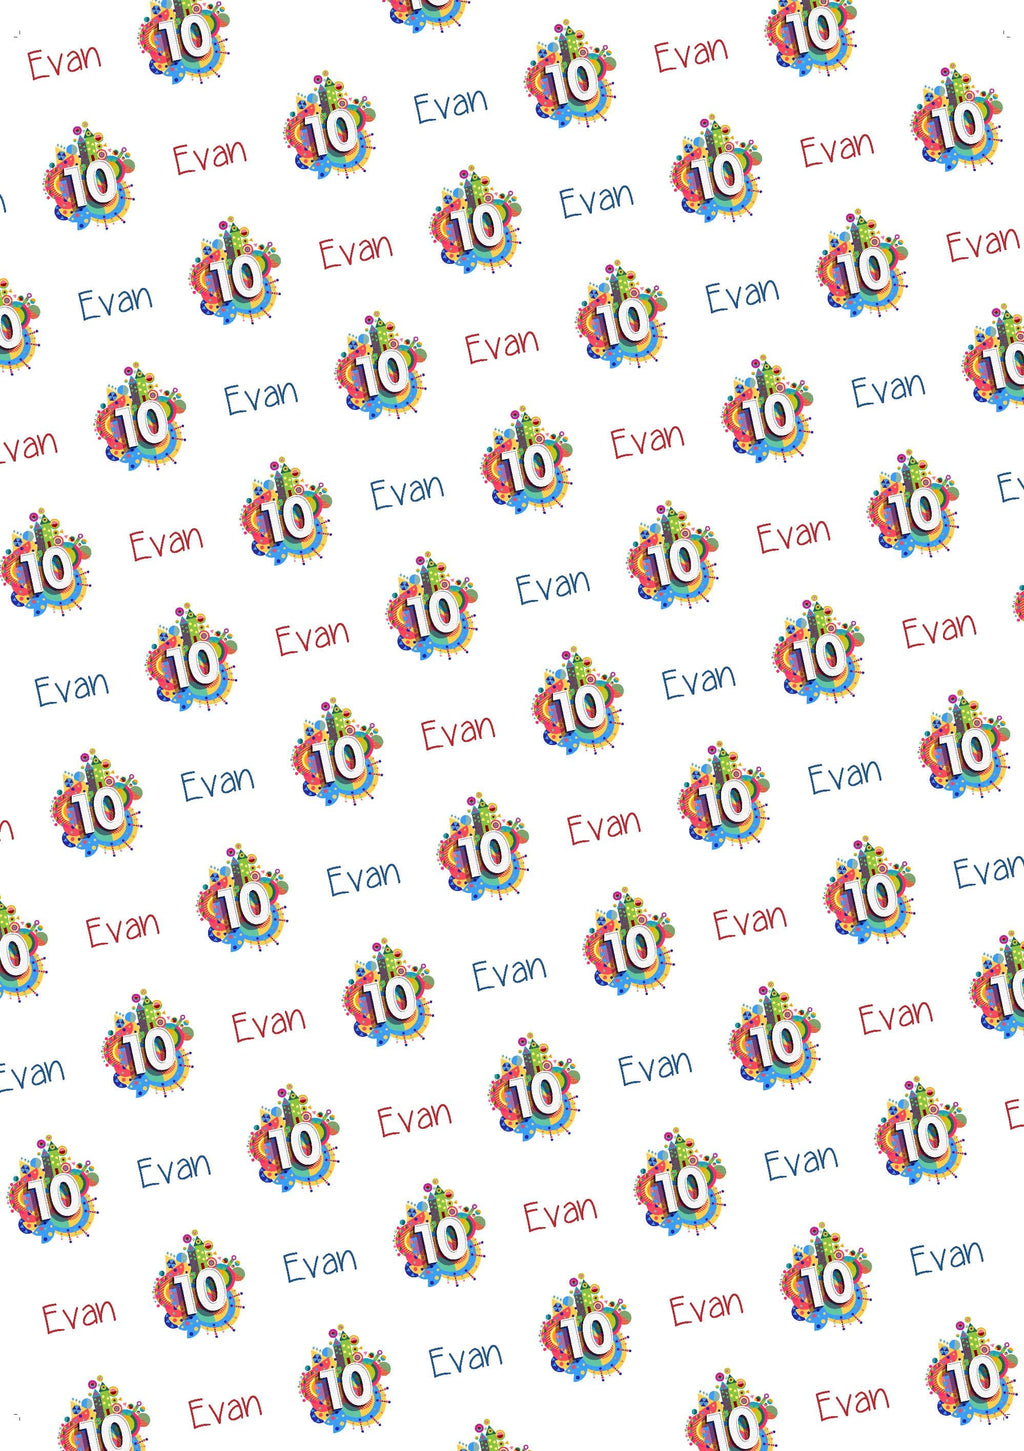 10th Birthday Personalized Birthday Gift Wrap - Potter's Printing